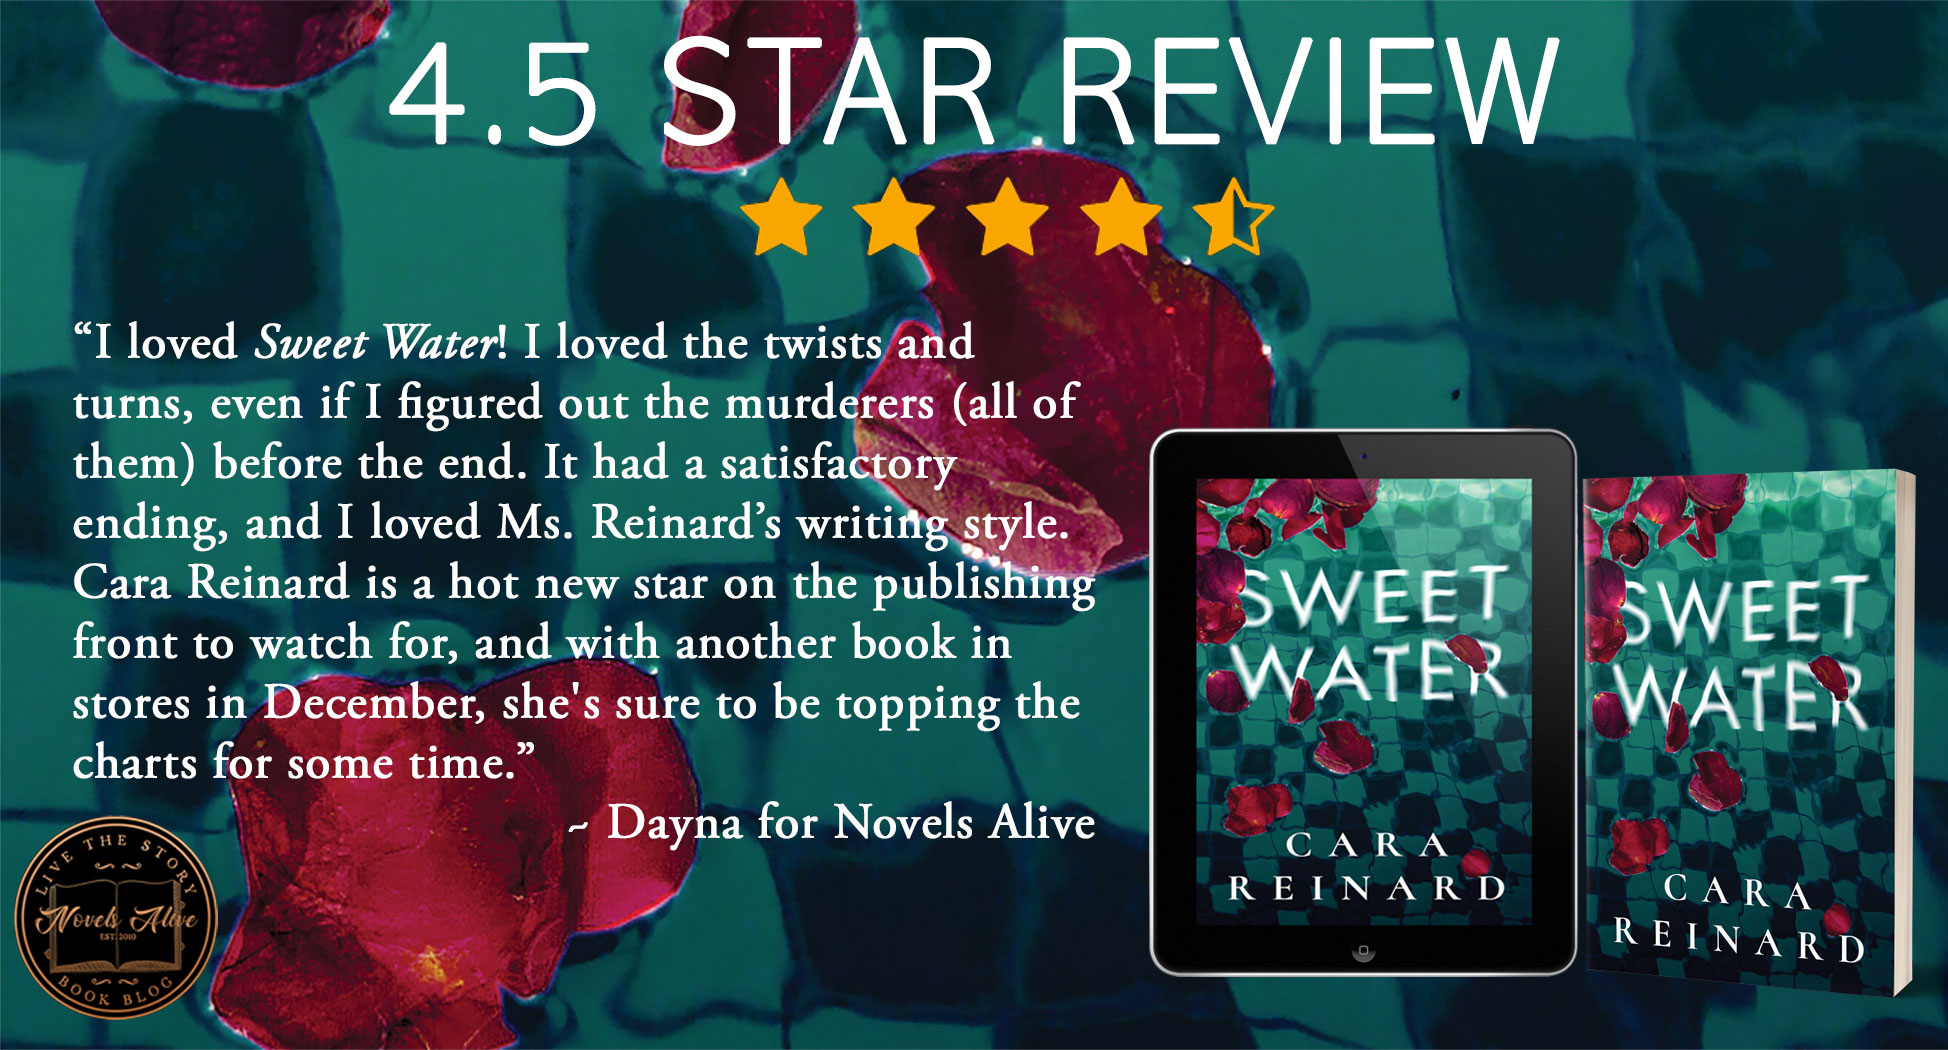 Sweet-Water-Review-FB